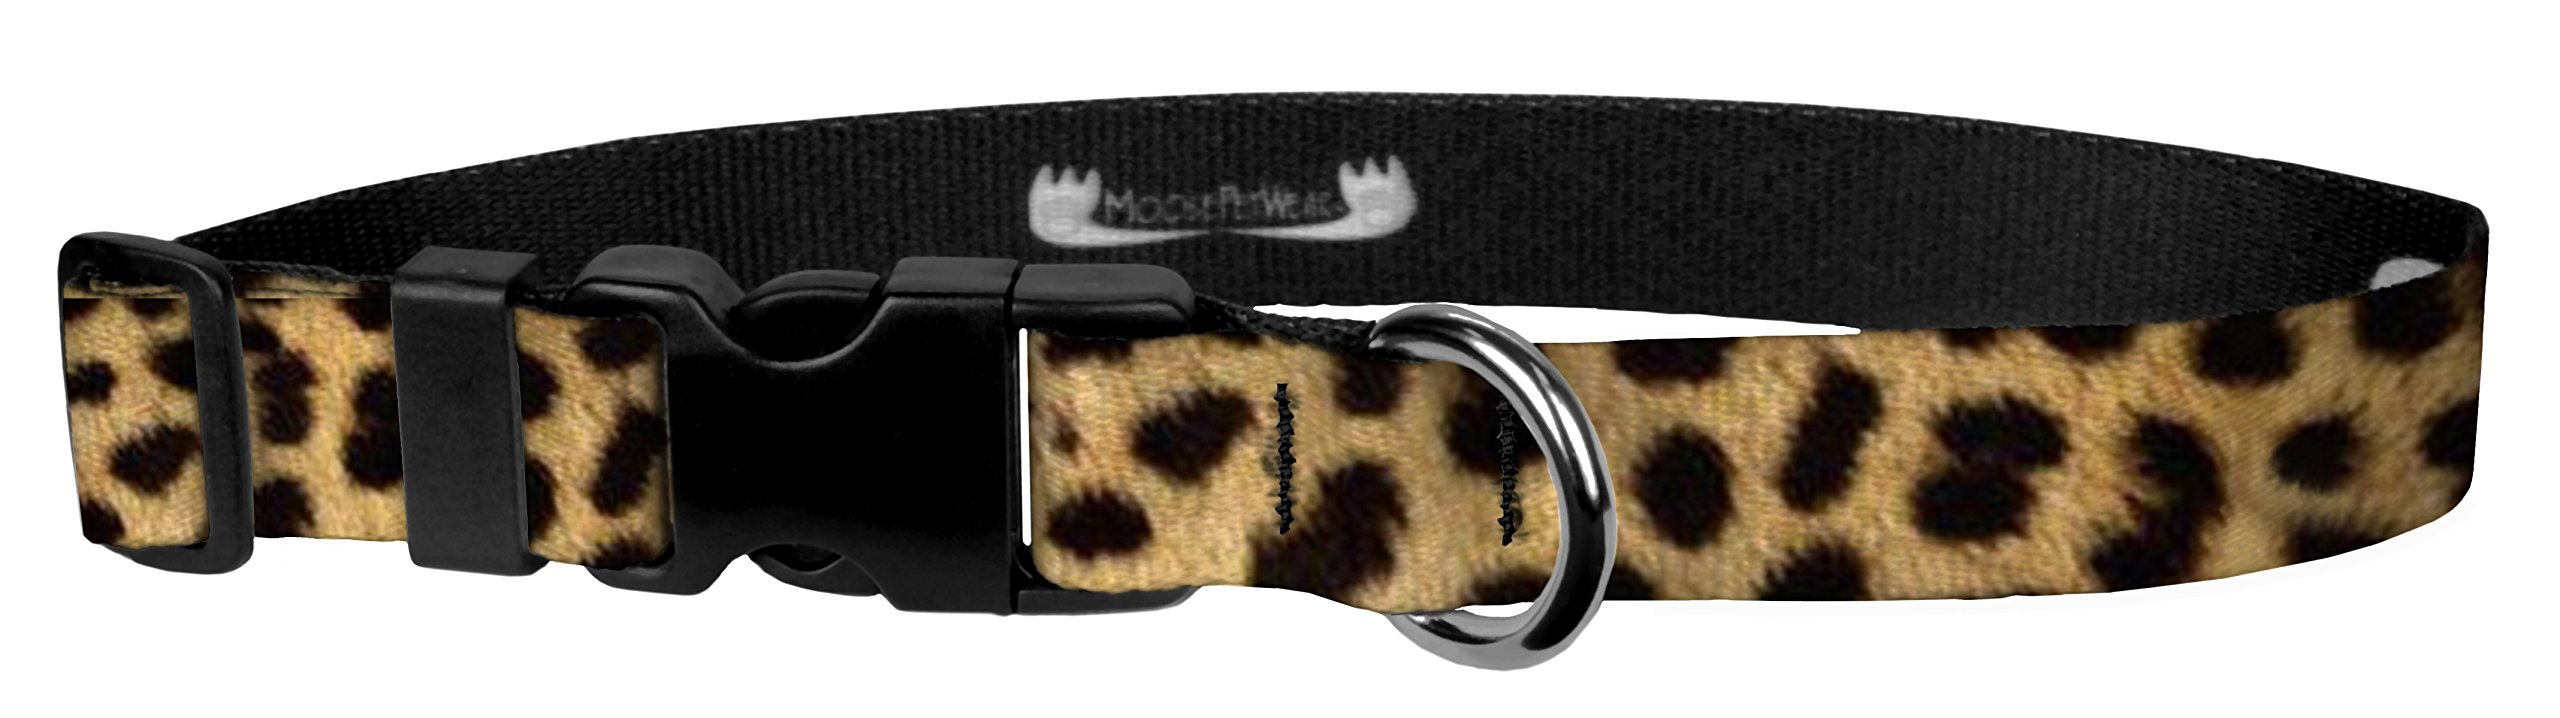 Moose Pet Wear Dog Collar - Patterned Adjustable Pet Collars, Made in the USA - 3/4 Inch Wide, Medium, Leopard by Moose Pet Wear